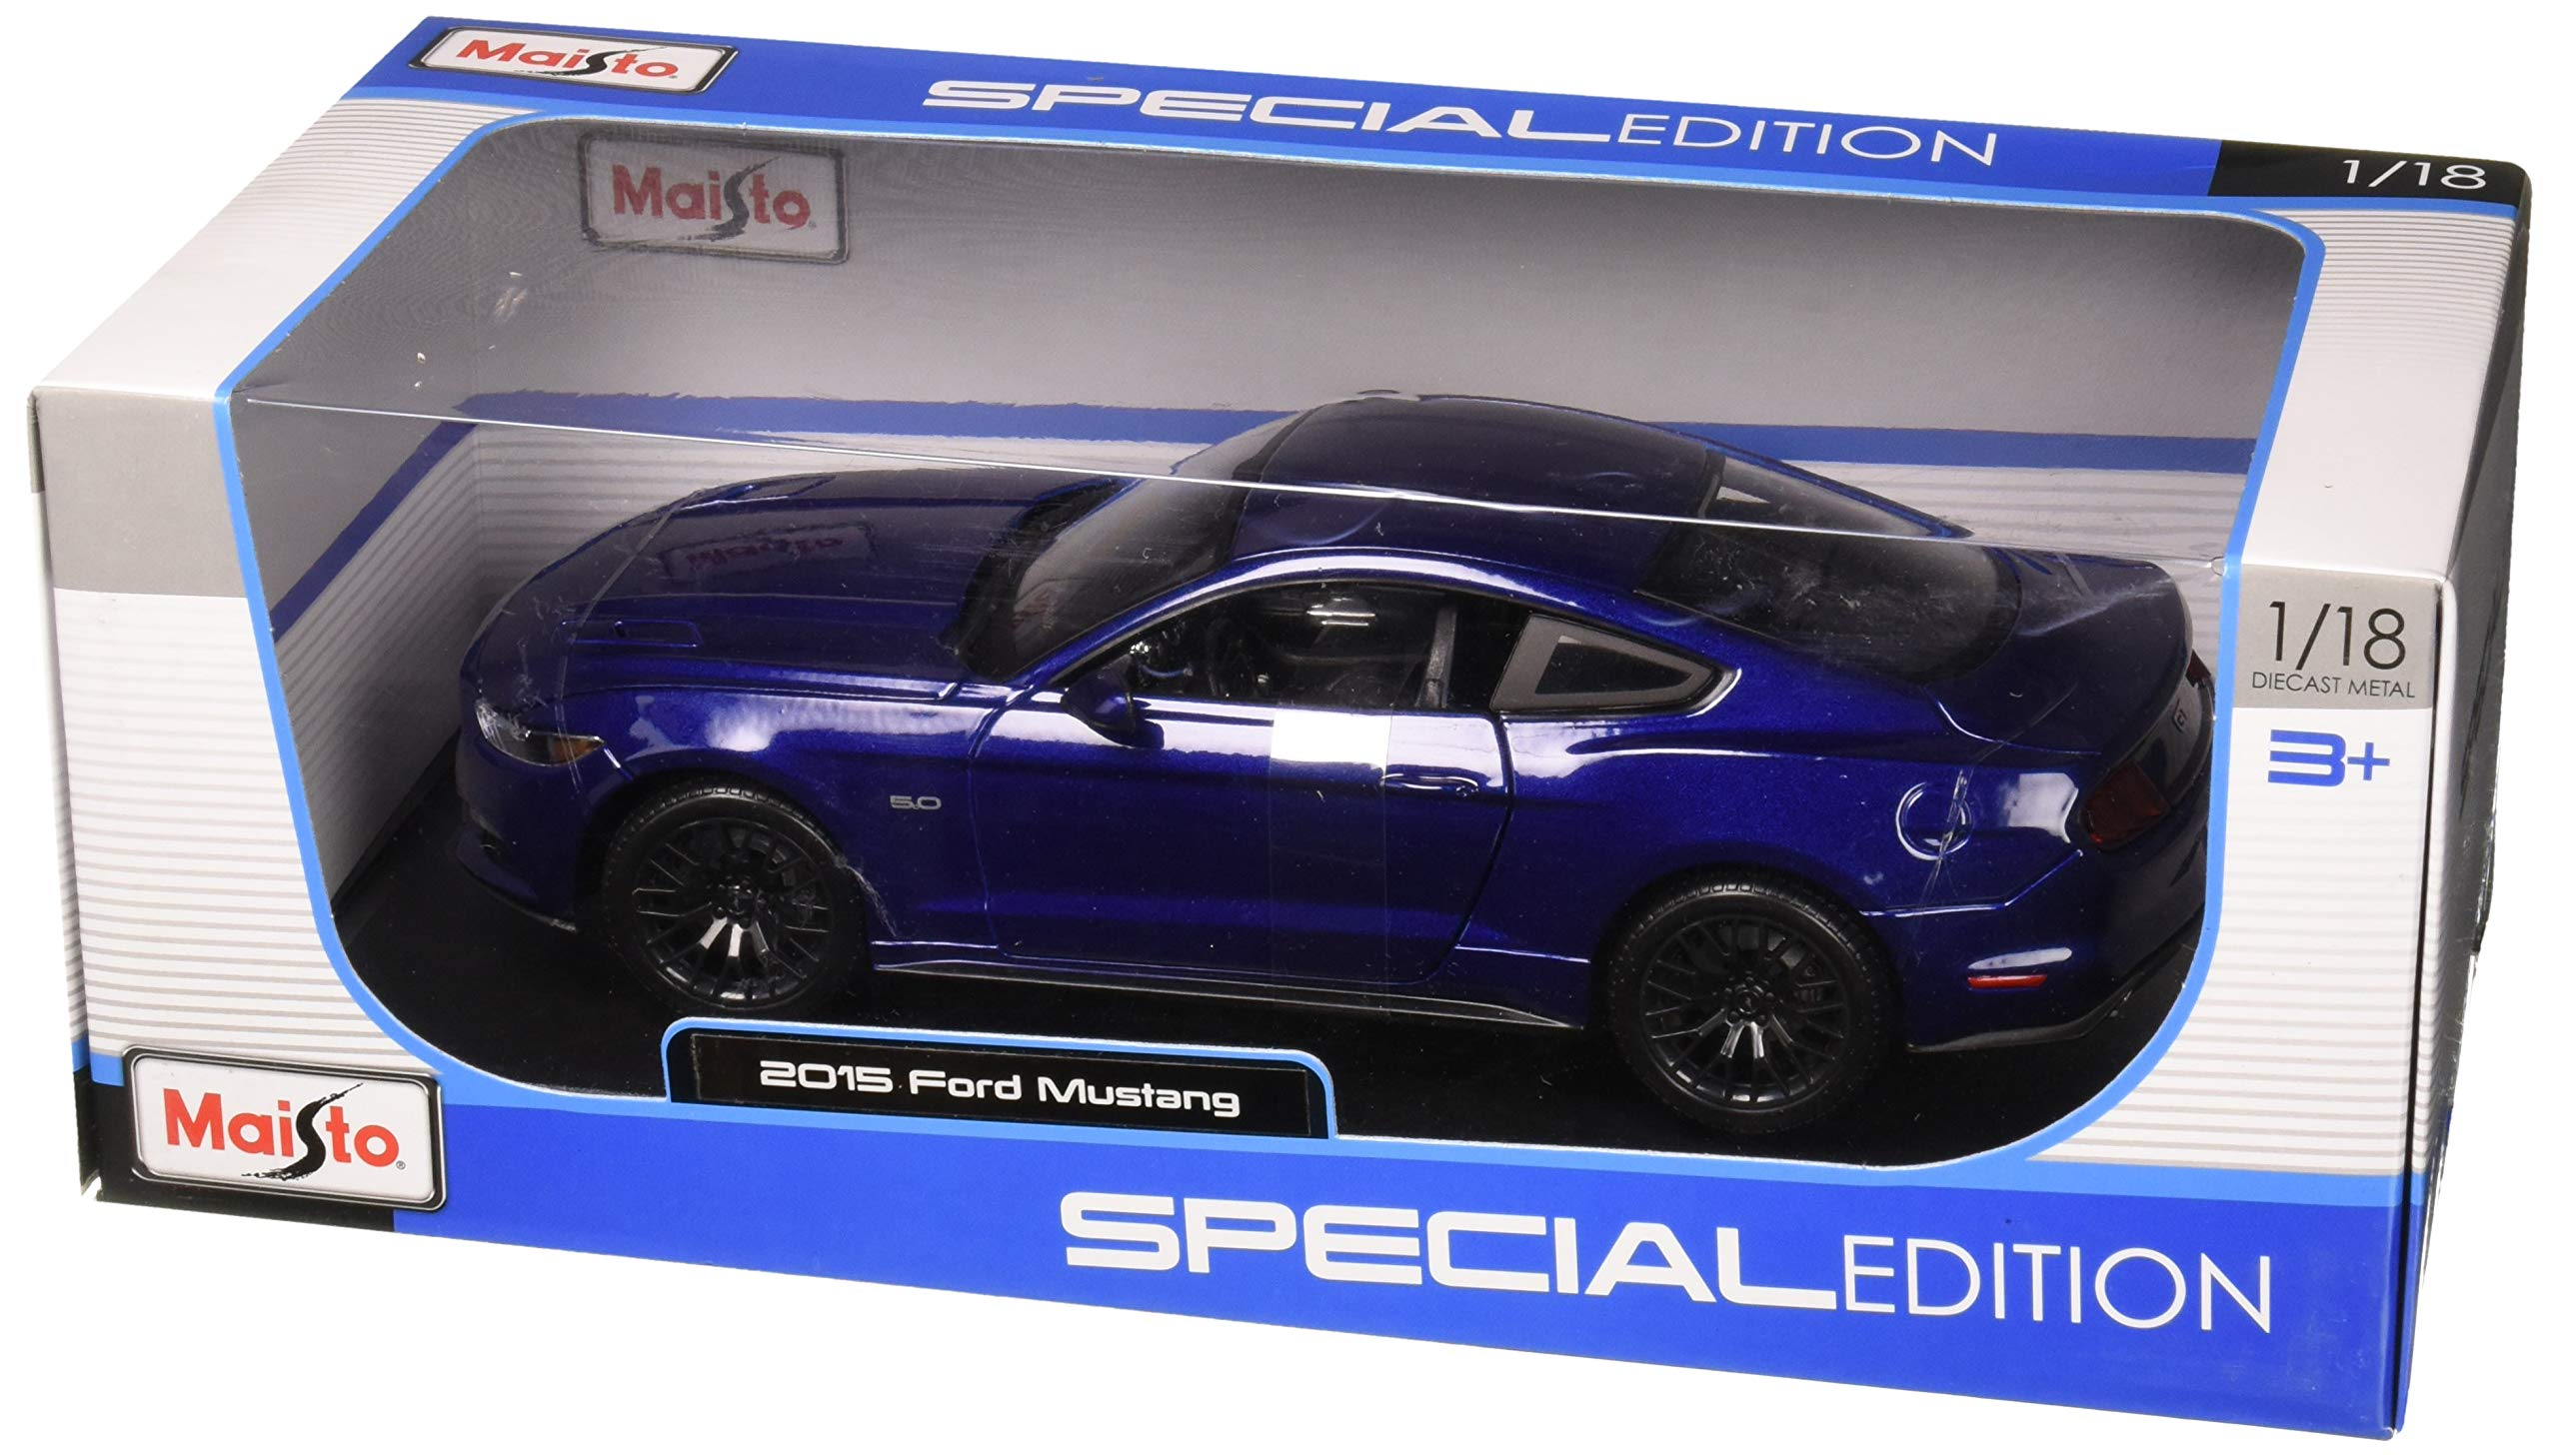 Maisto 31197BL 1:18 Special Edition 2015 Ford Mustang Diecast Vehicles